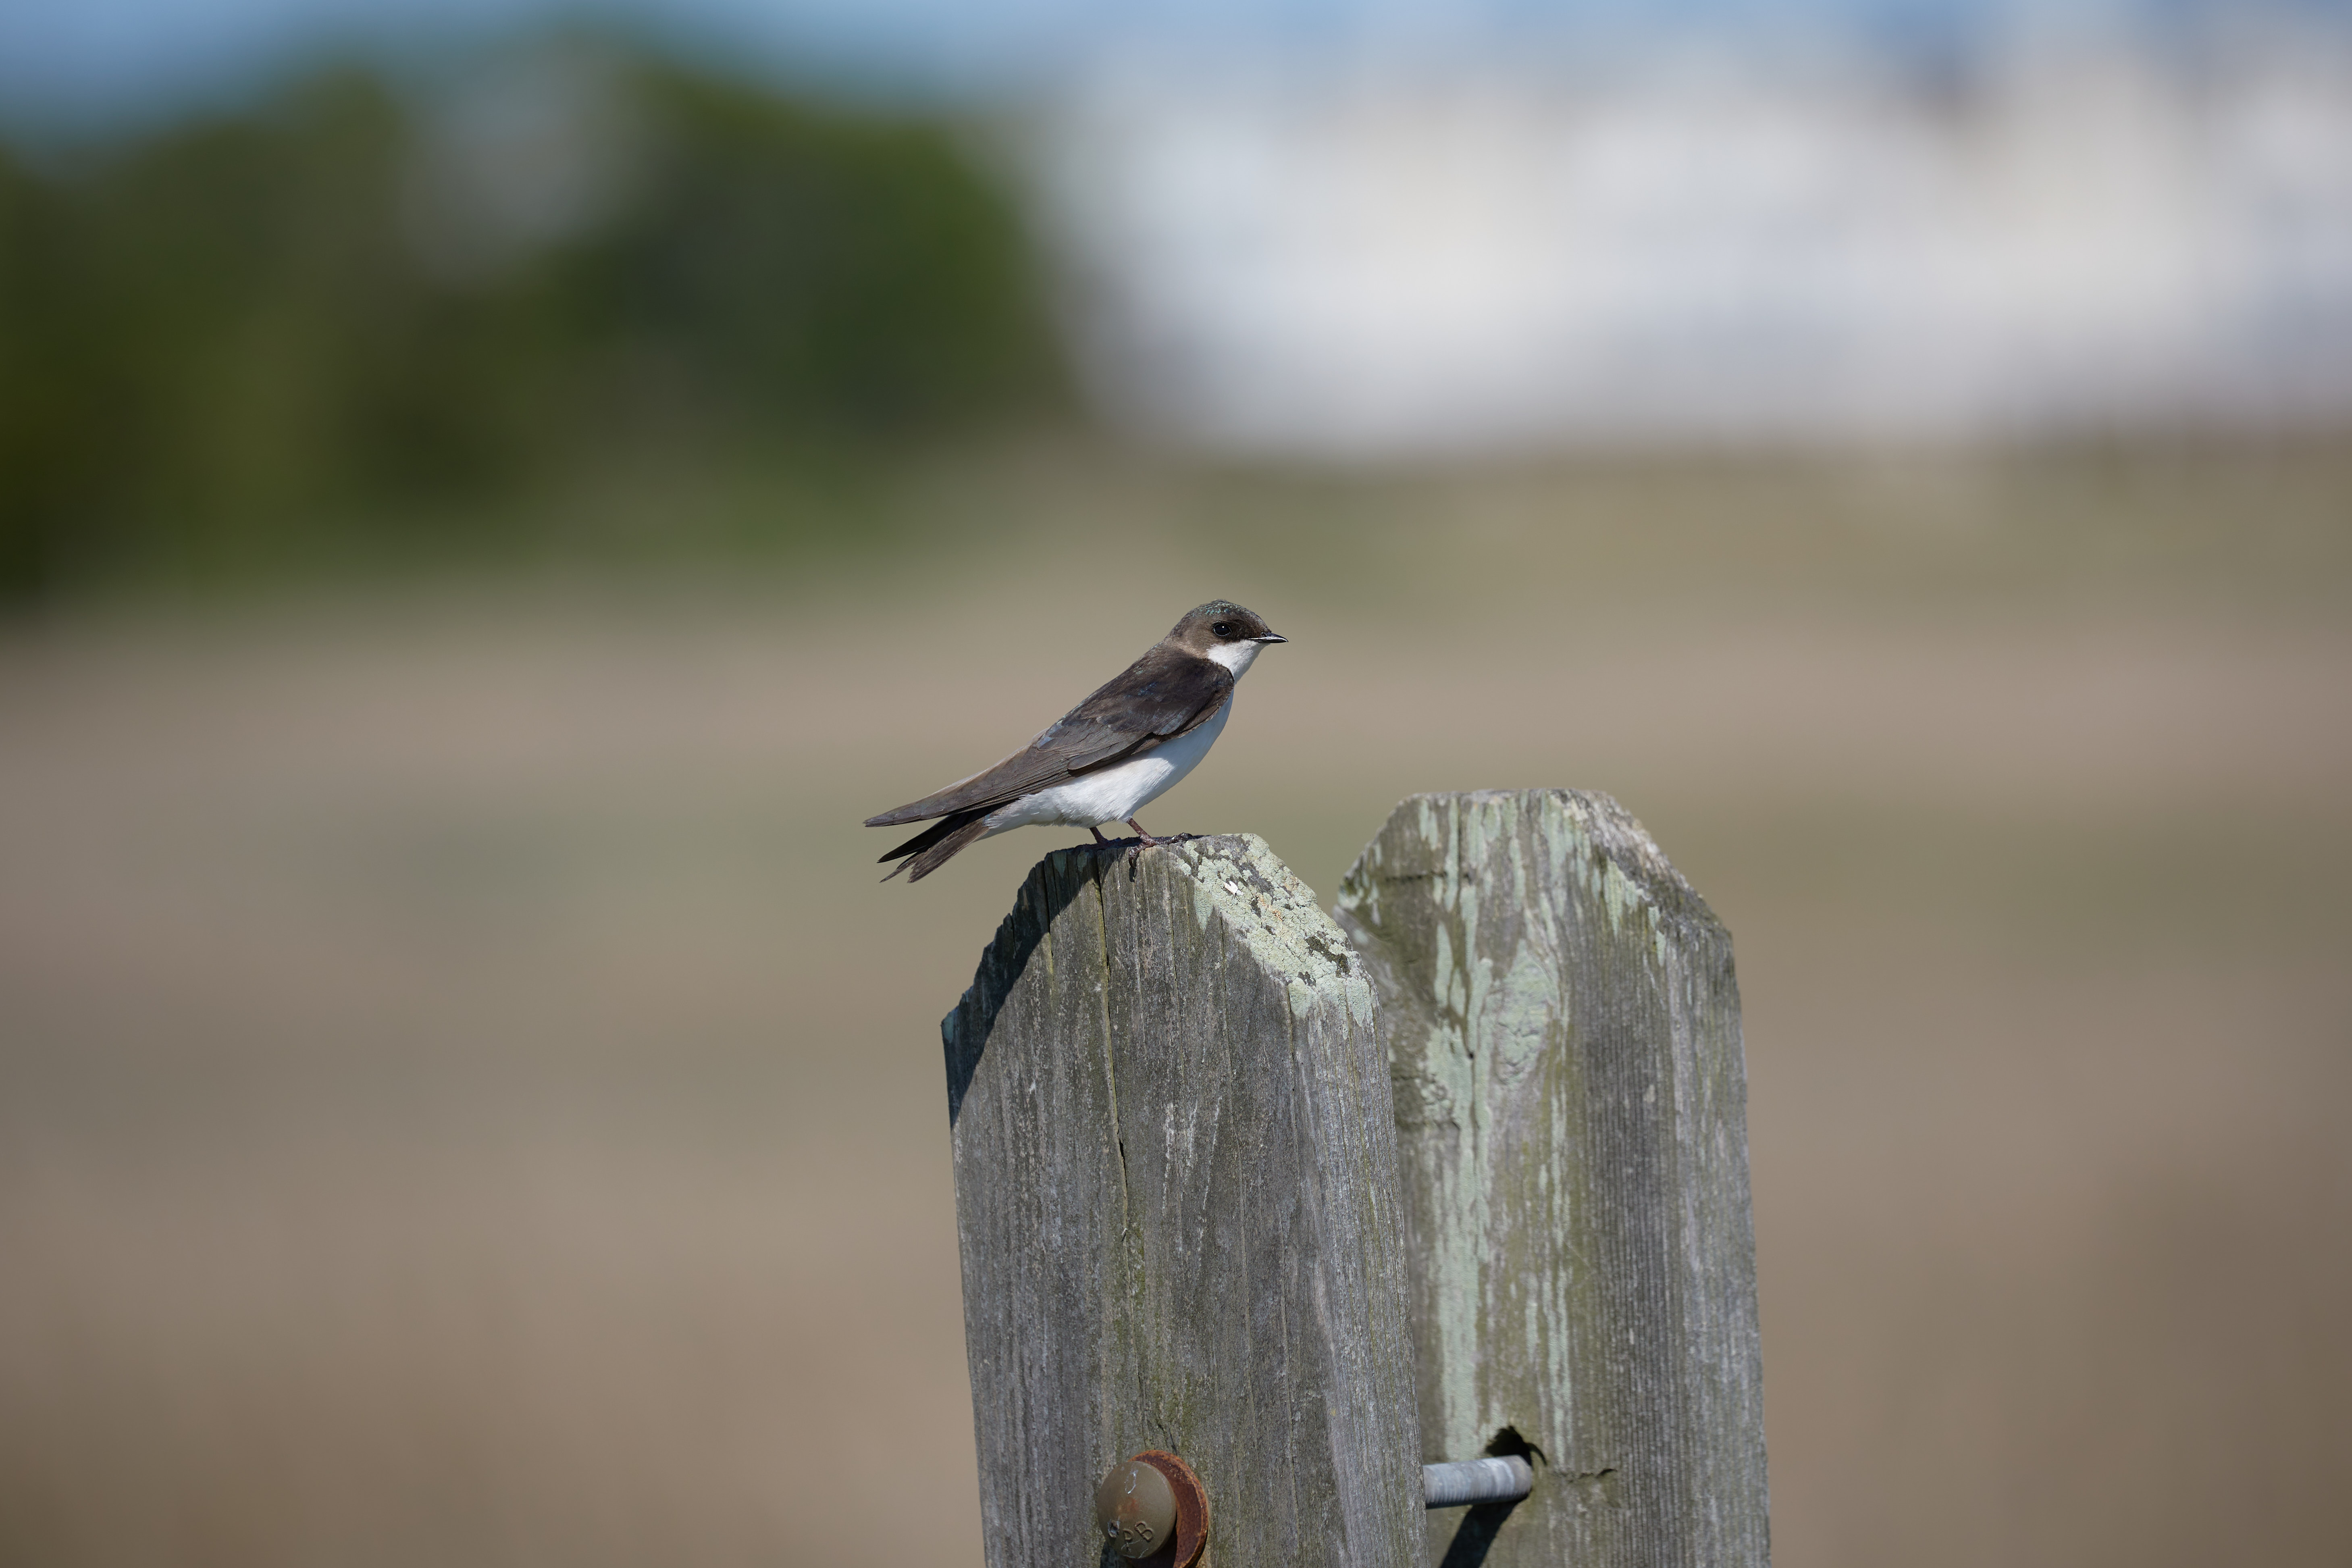 Tree swallow on wooden fence.